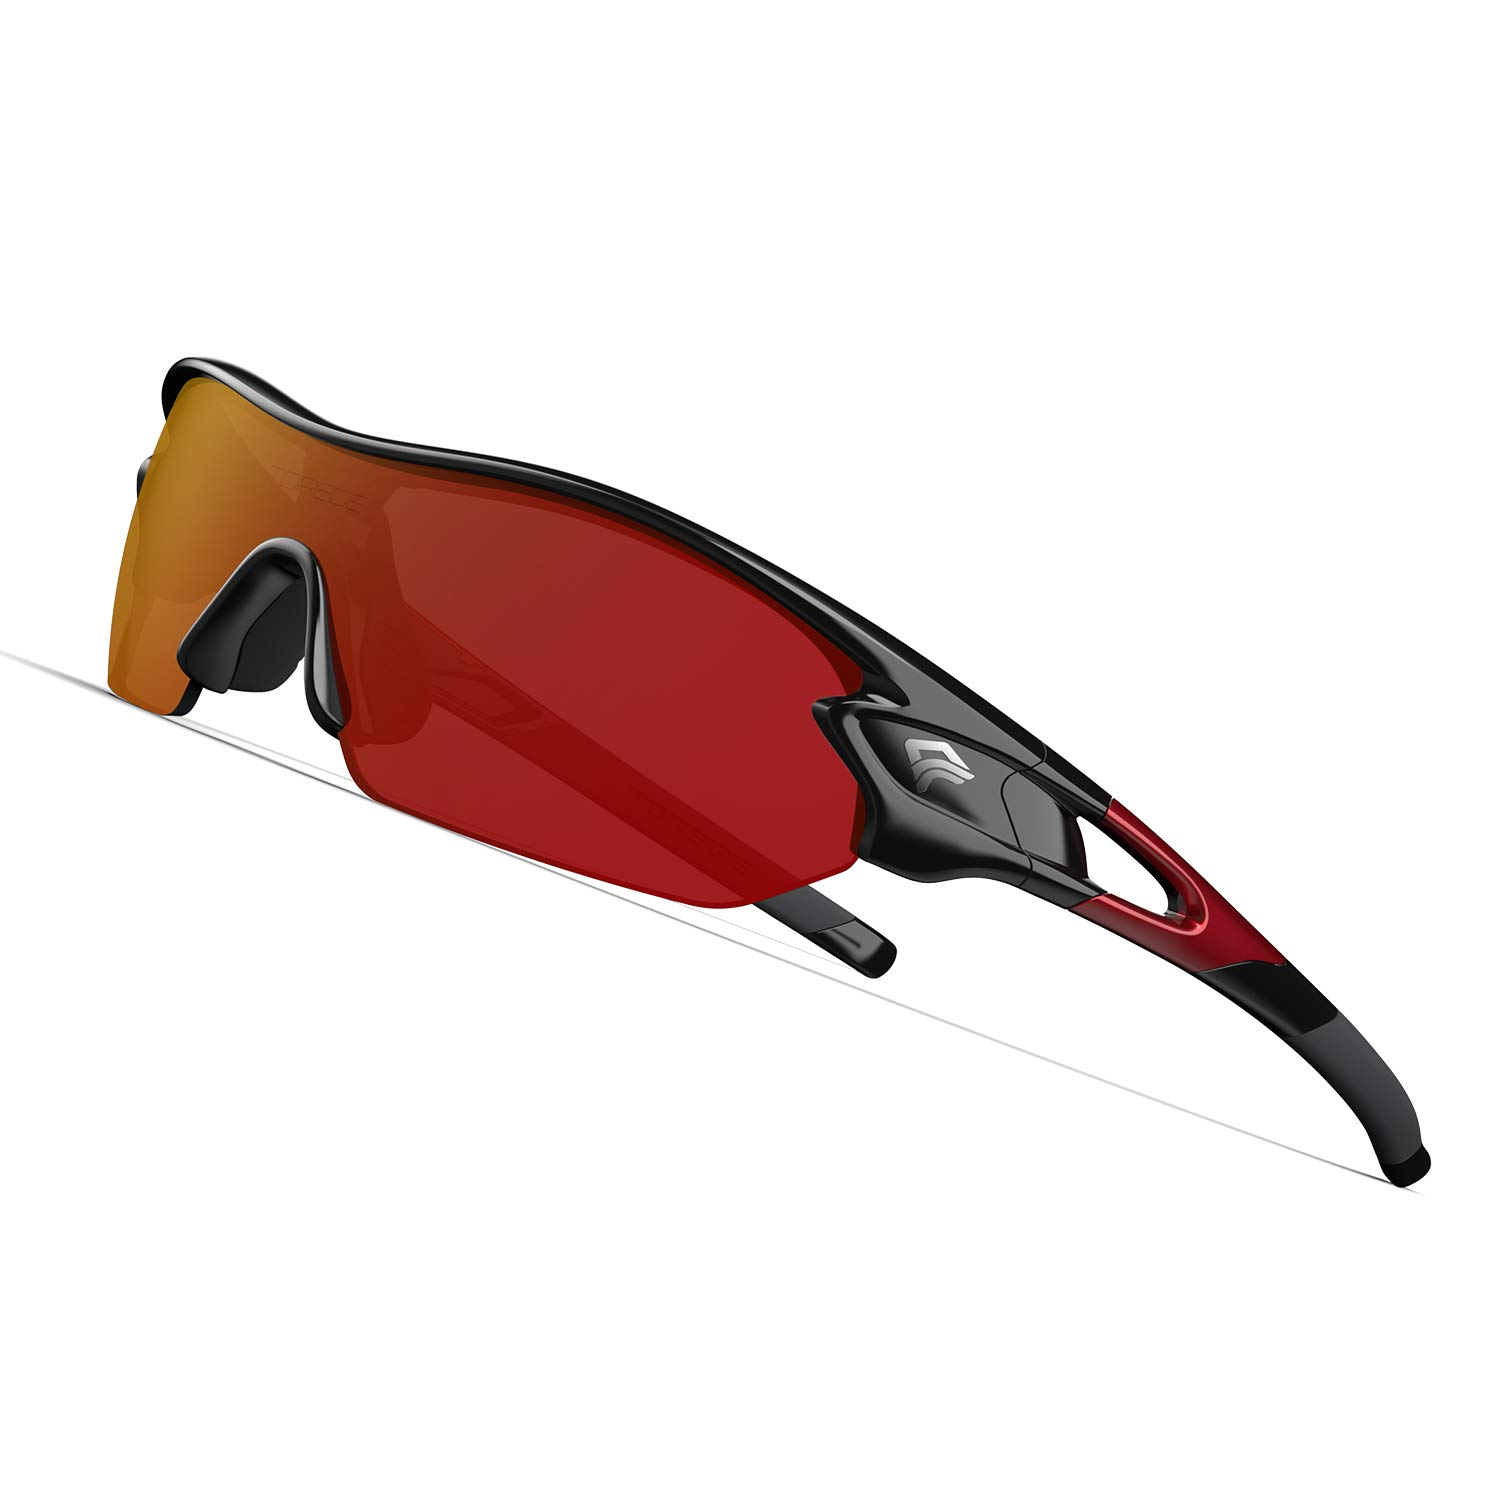 TOREGE Polarized Sports Sunglasses with 3 Interchangeable Lenes for Men Women Cycling Running Driving Fishing Golf Baseball Glasses TR002 Upgrade(Black Red &Red Lens)